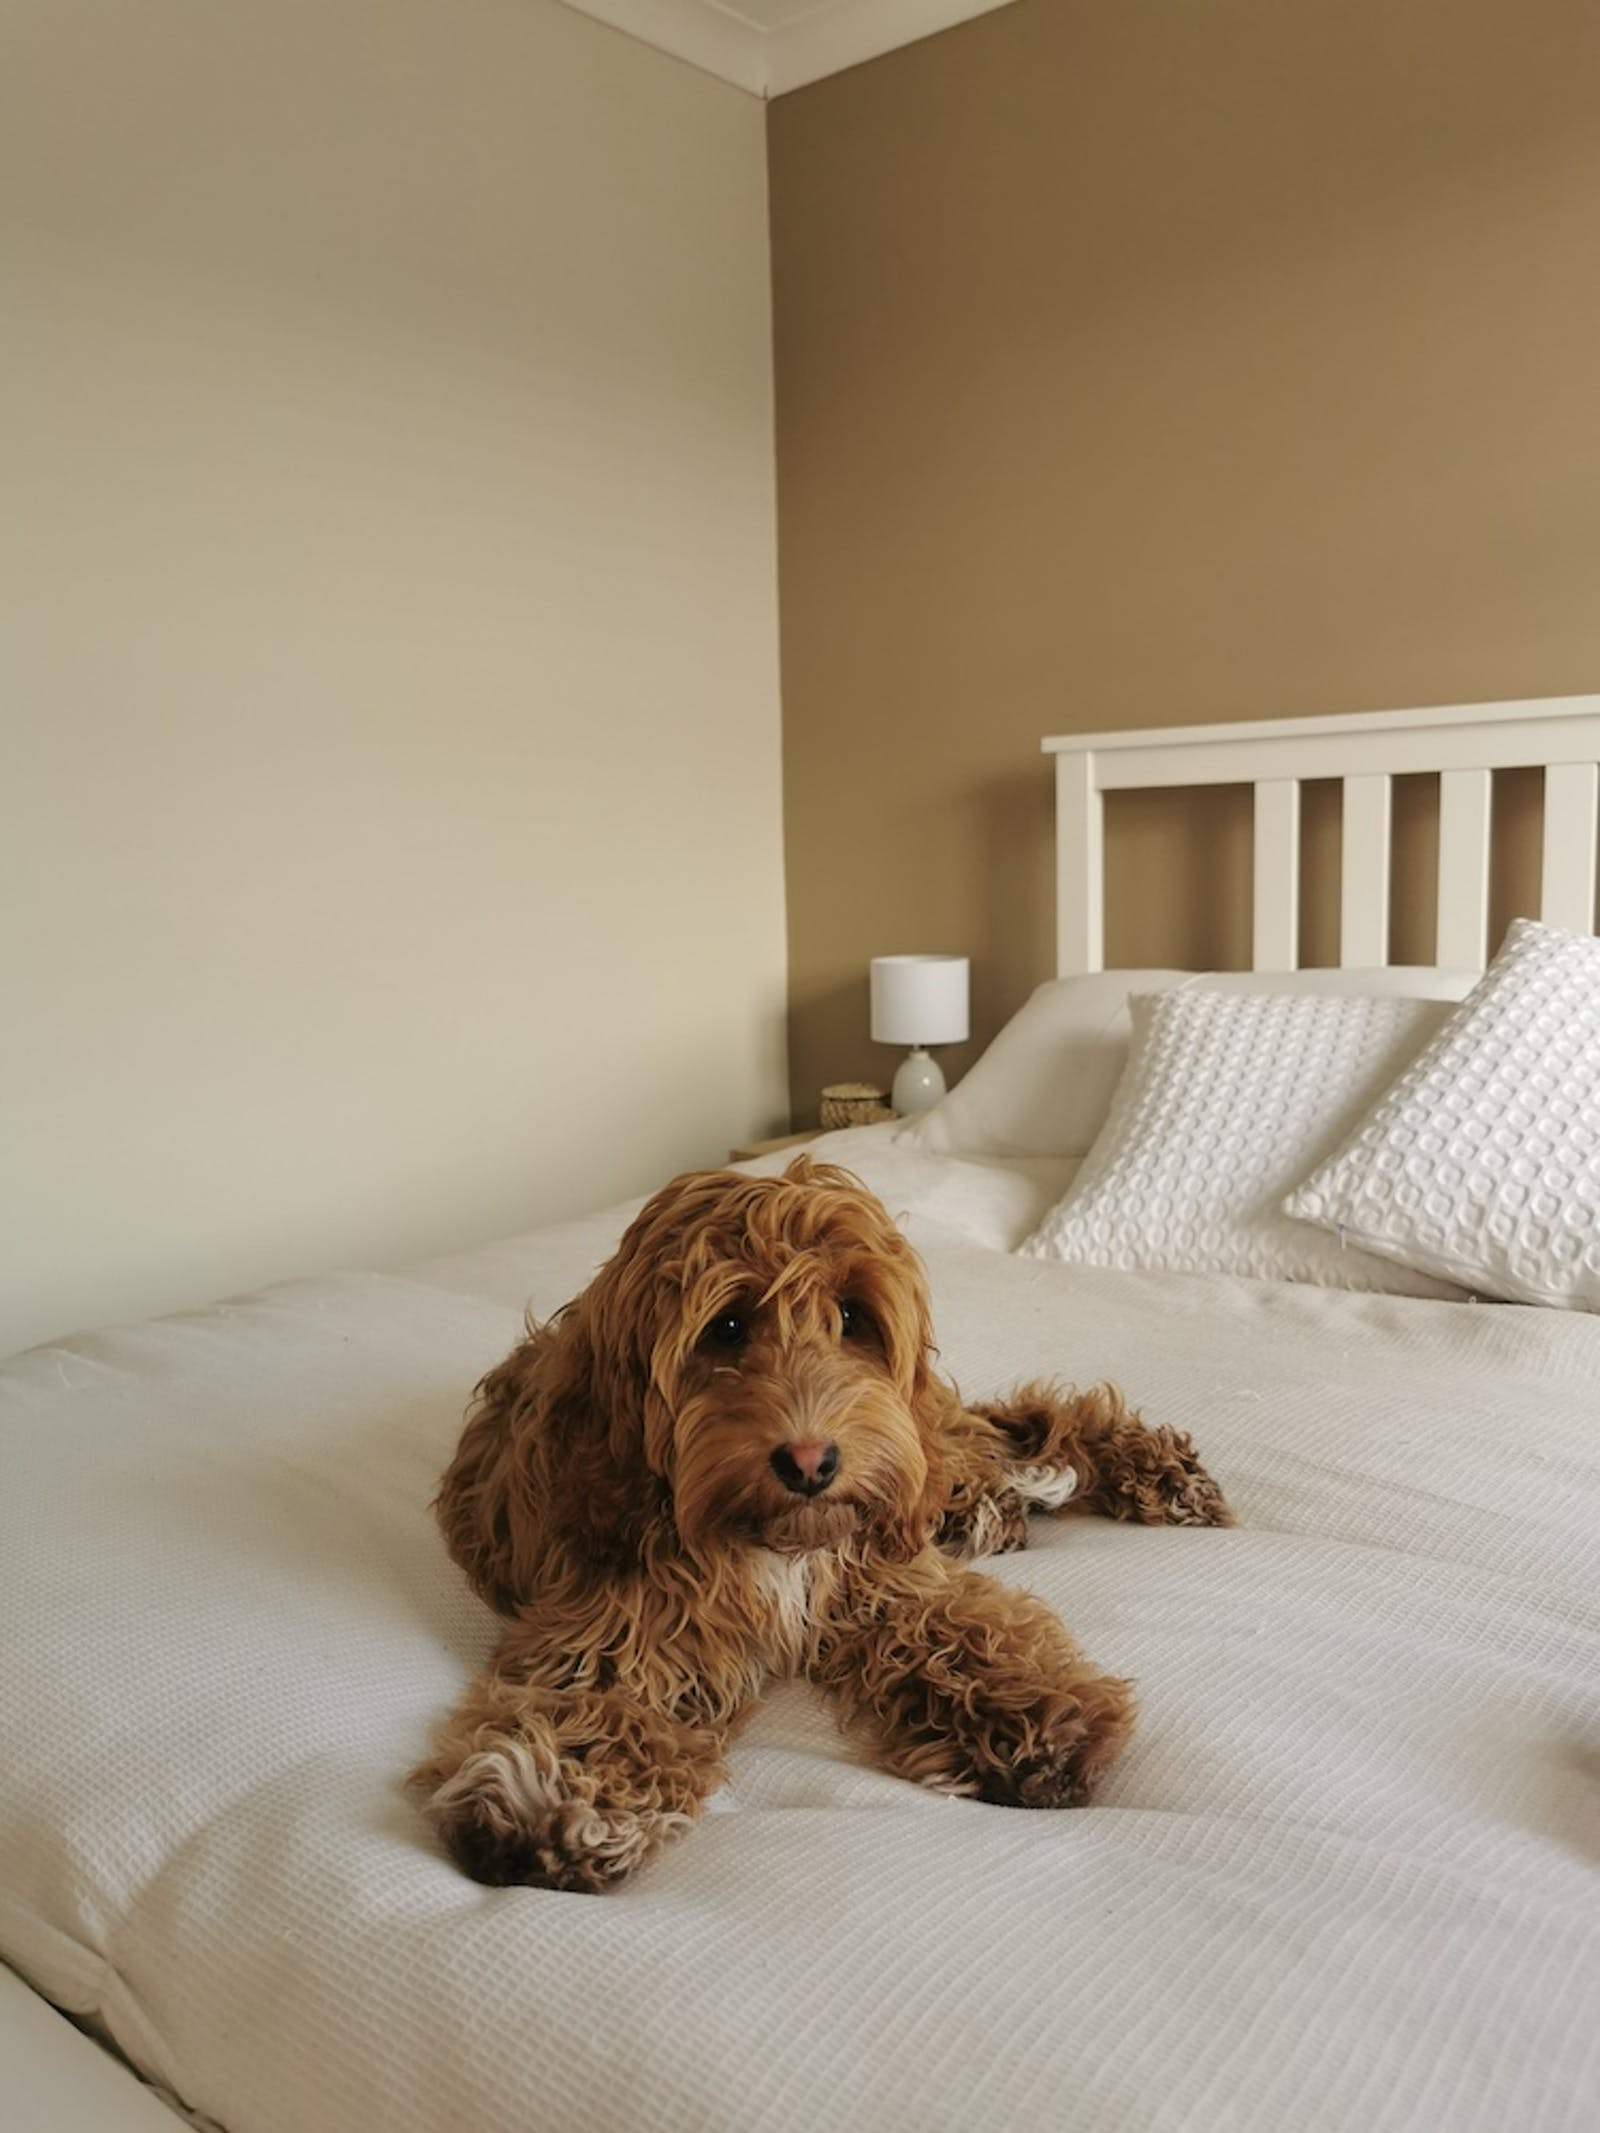 Dog lying on bed in bedroom painted in Lick Beige 02